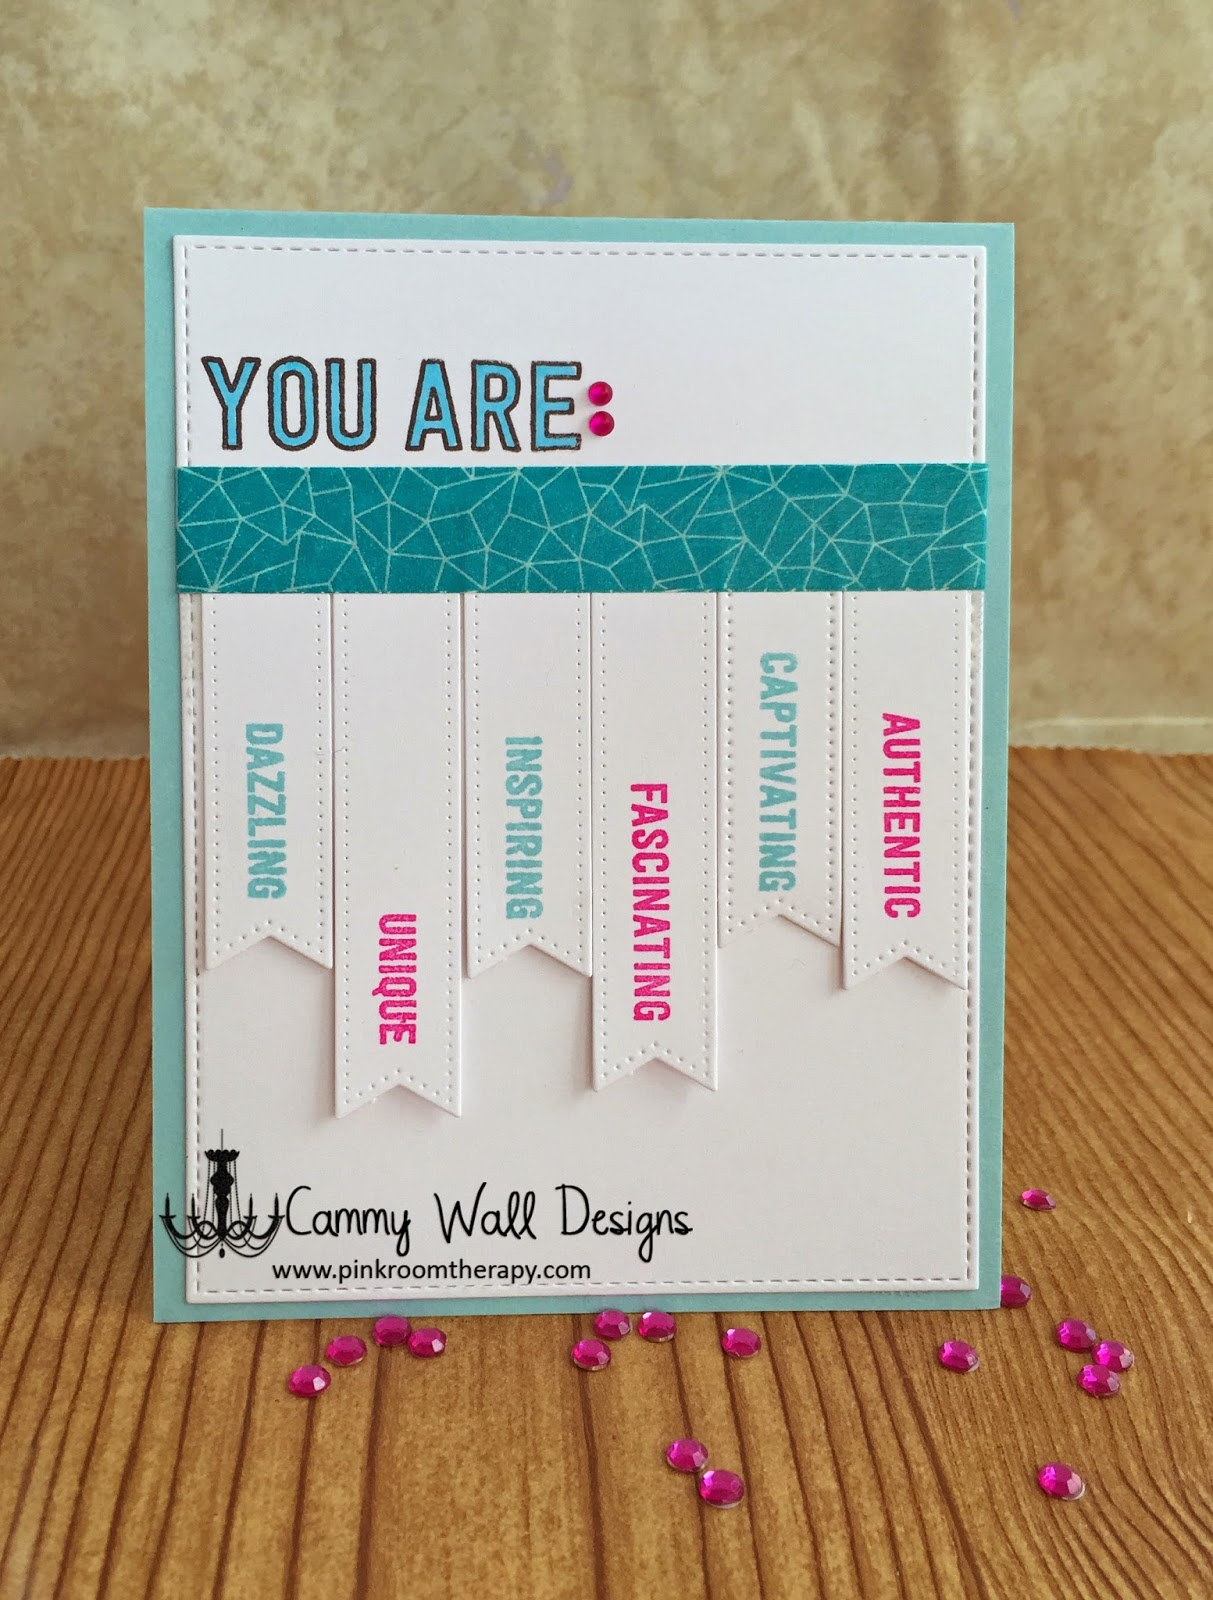 Sweet Stamp Shop Pink Room Therapy Designs